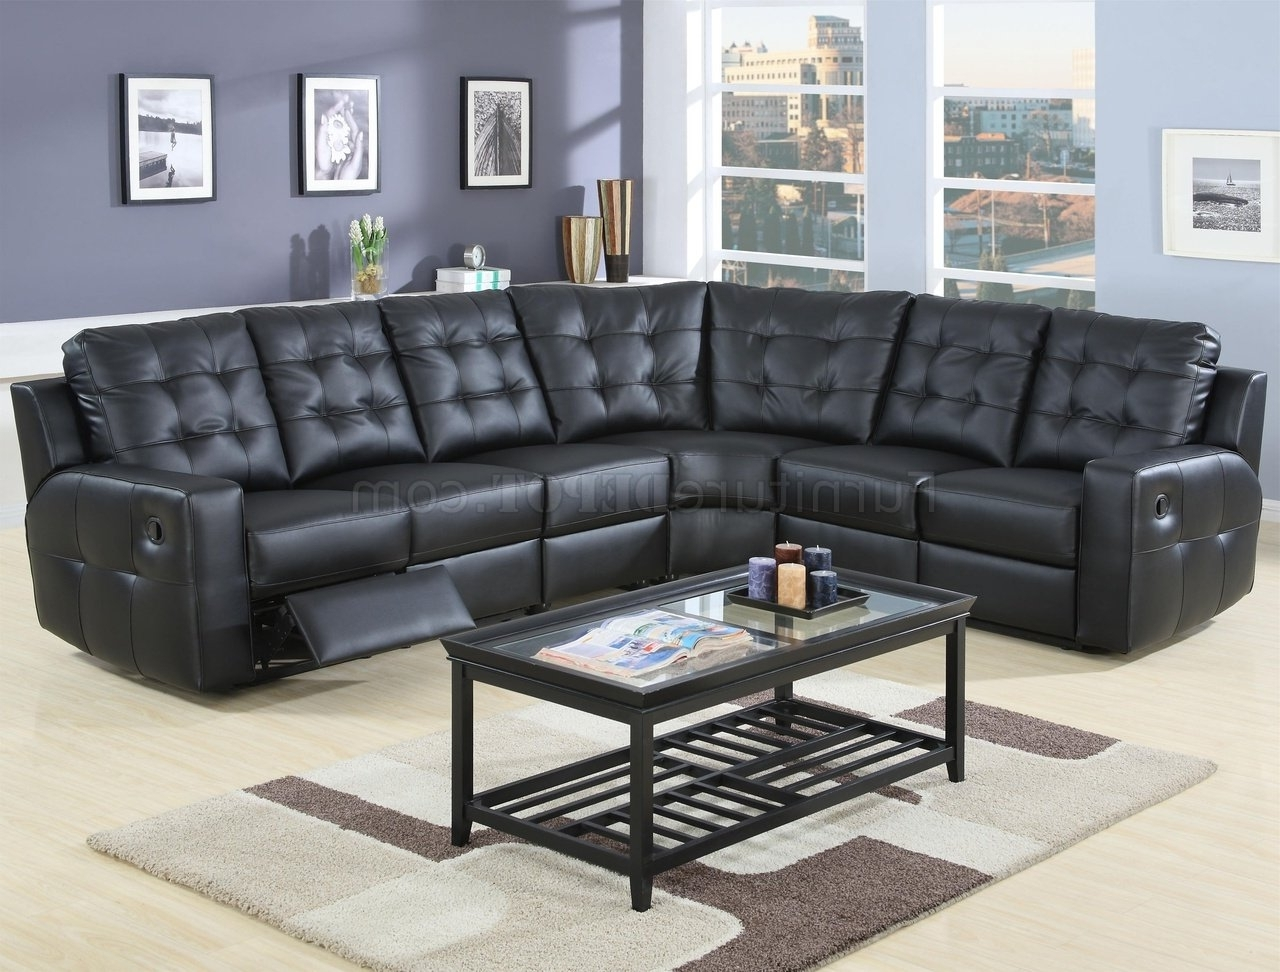 Popular Modern Leather Double Reclining Sectional Sofa 600315 Black Pertaining To Leather Motion Sectional Sofas (View 7 of 20)